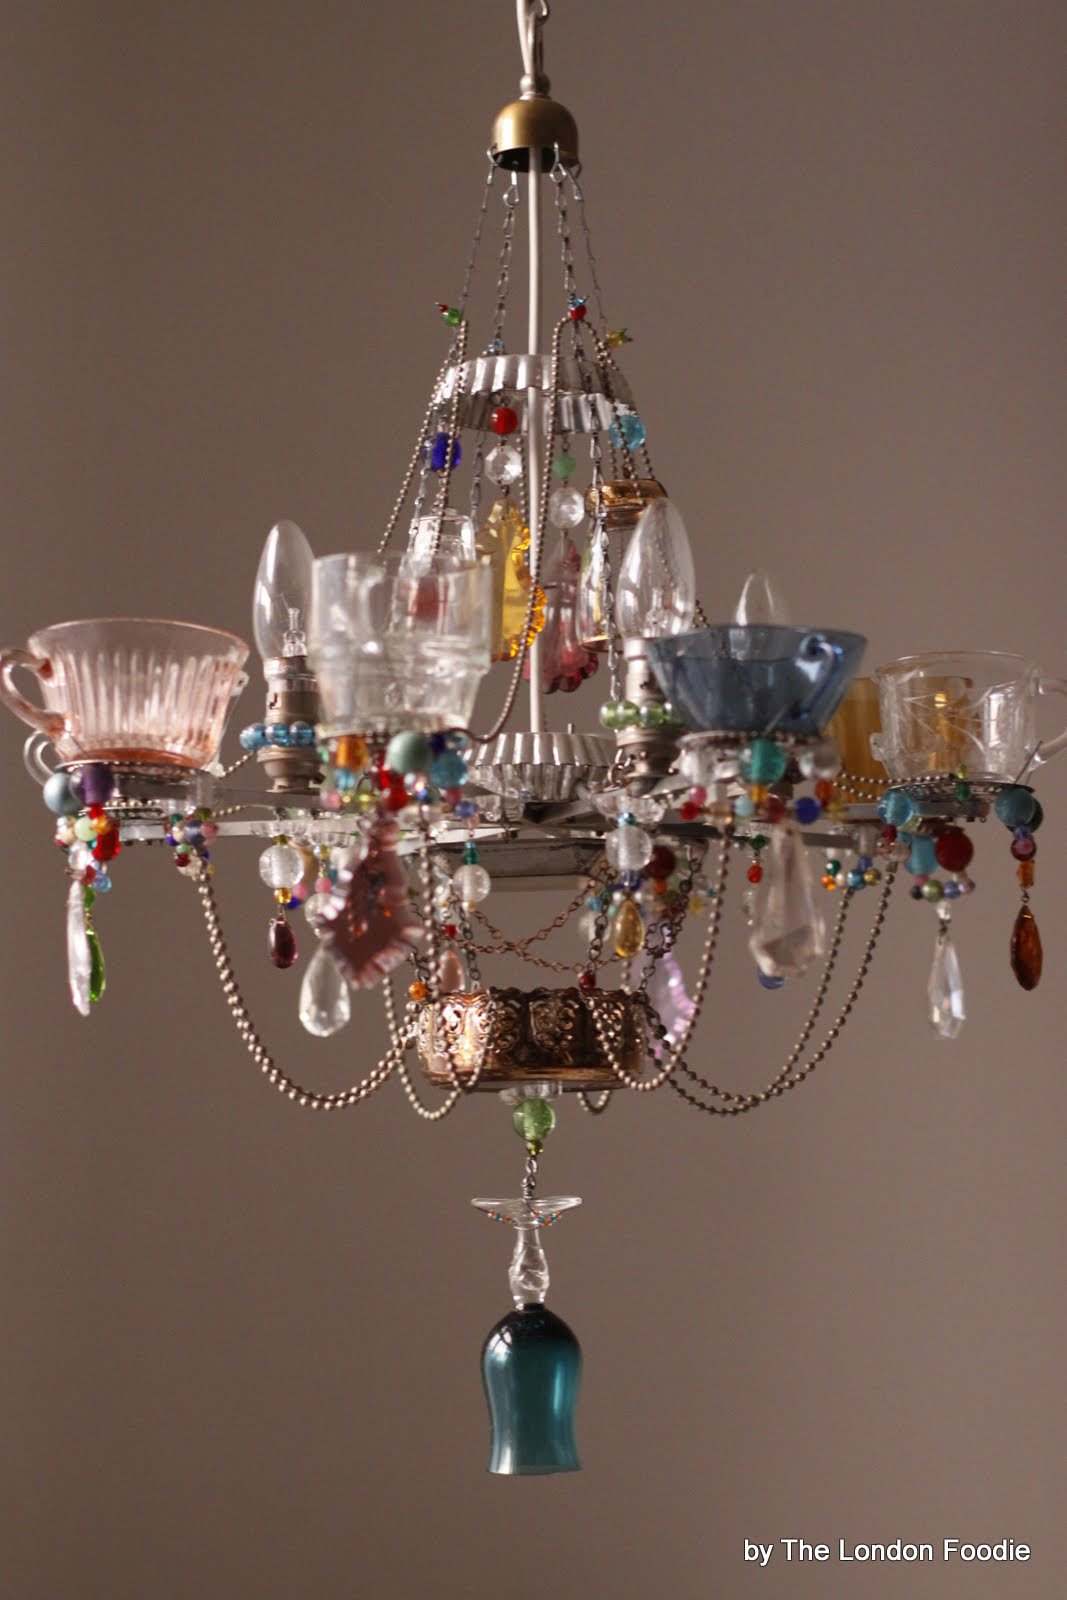 The London Foodie The Fantastic Teacup Chandeliers by